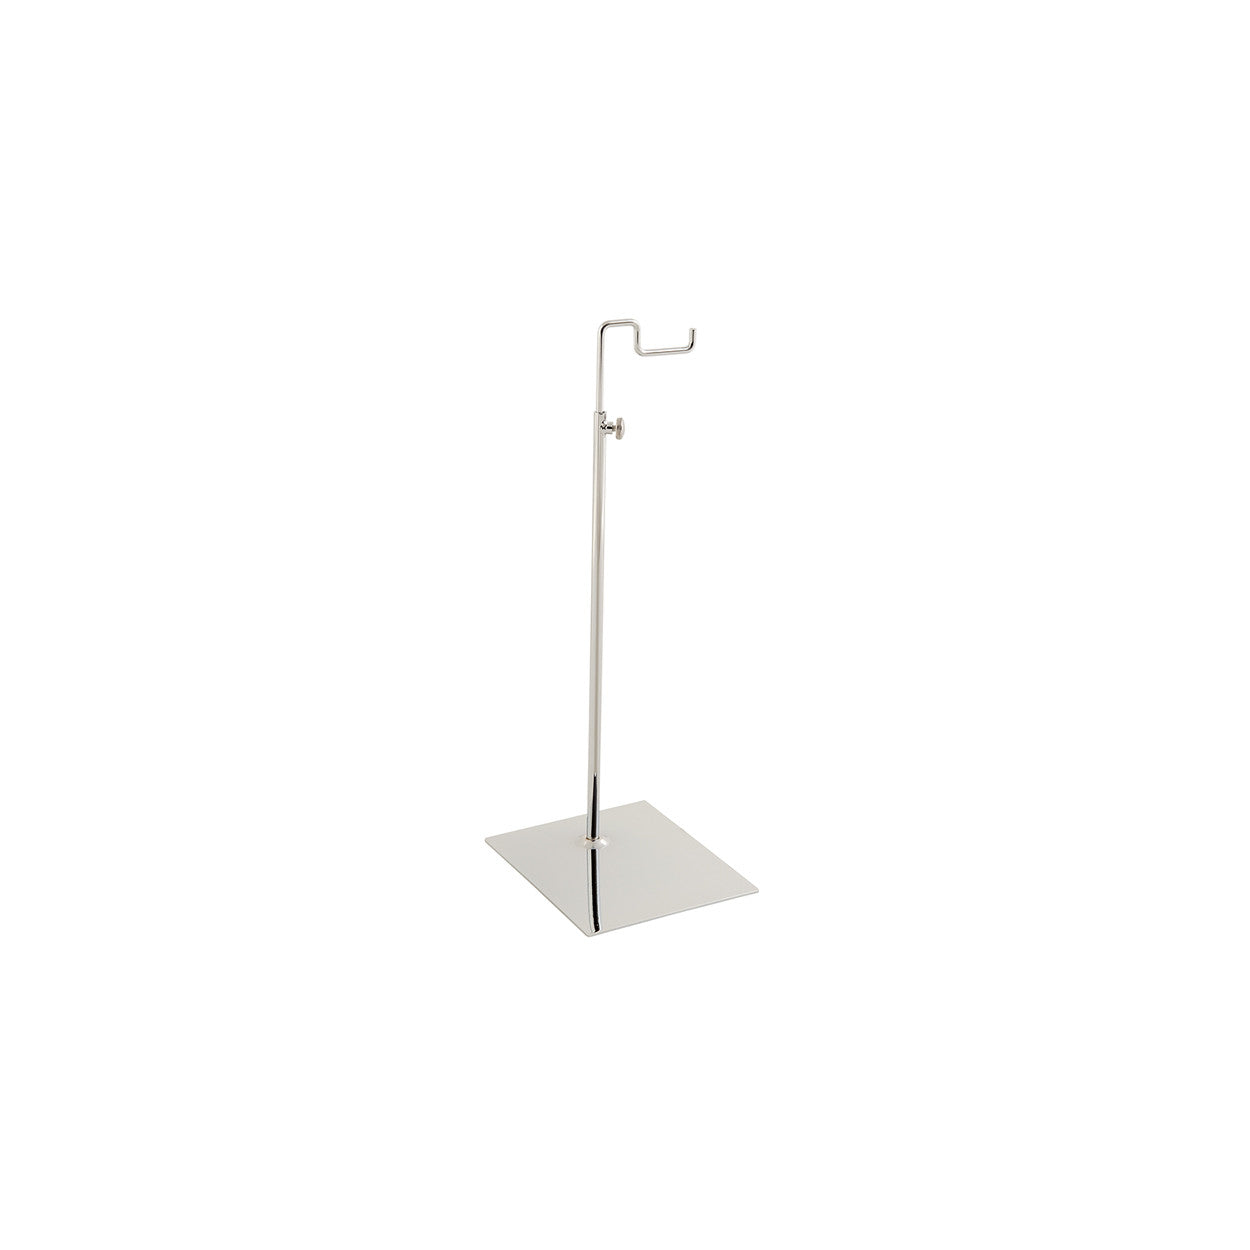 Budget handbag display stand small with solid base  150x120 base,300-570 mm Adj H M2801CH